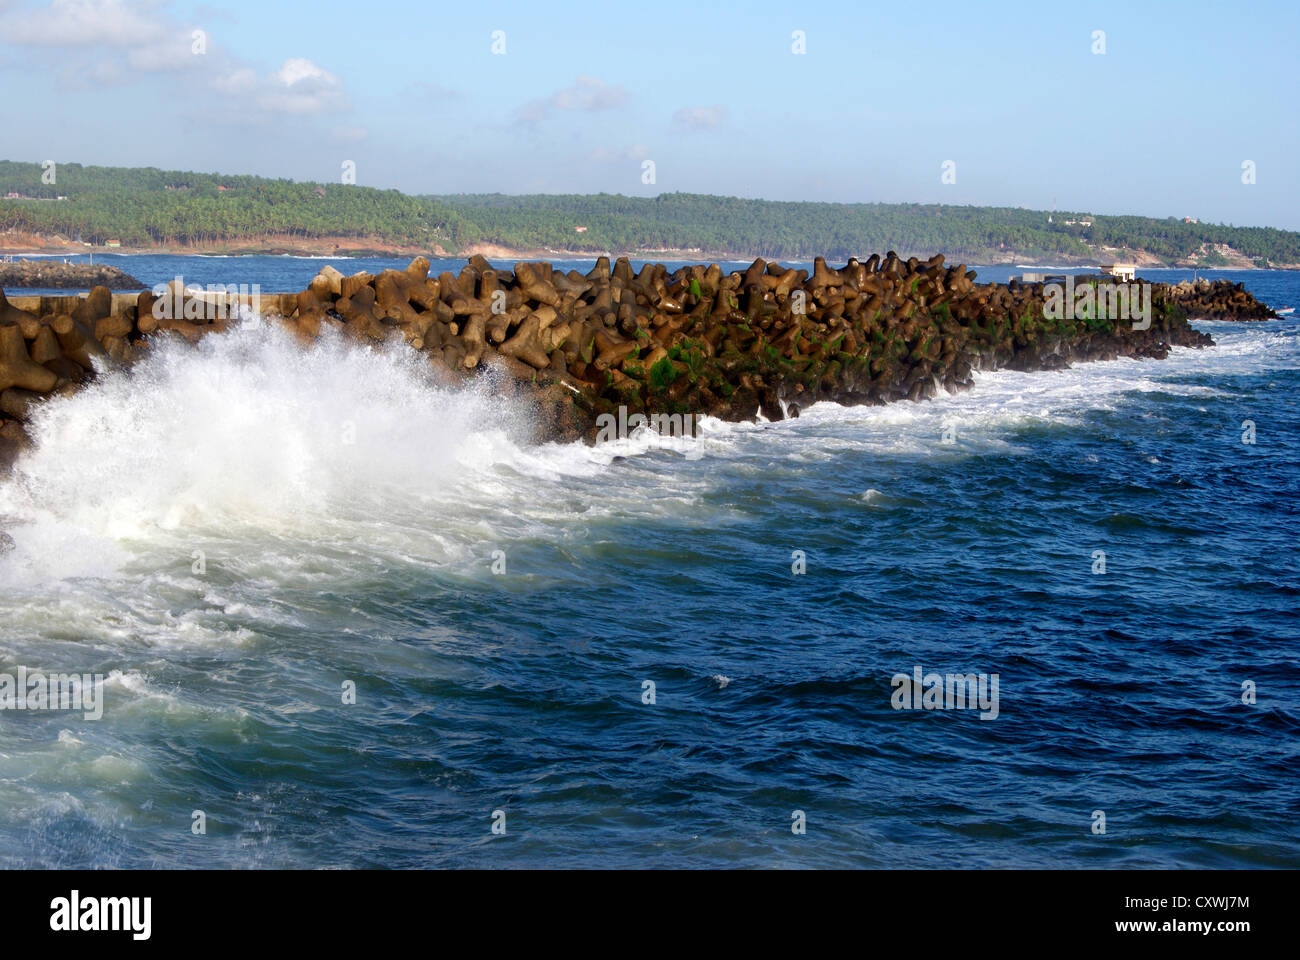 Sea Waves Lashing strongly on the Protective sea walls of Vizhinjam Harbor near Kovalam Beach at Kerala,India - Stock Image